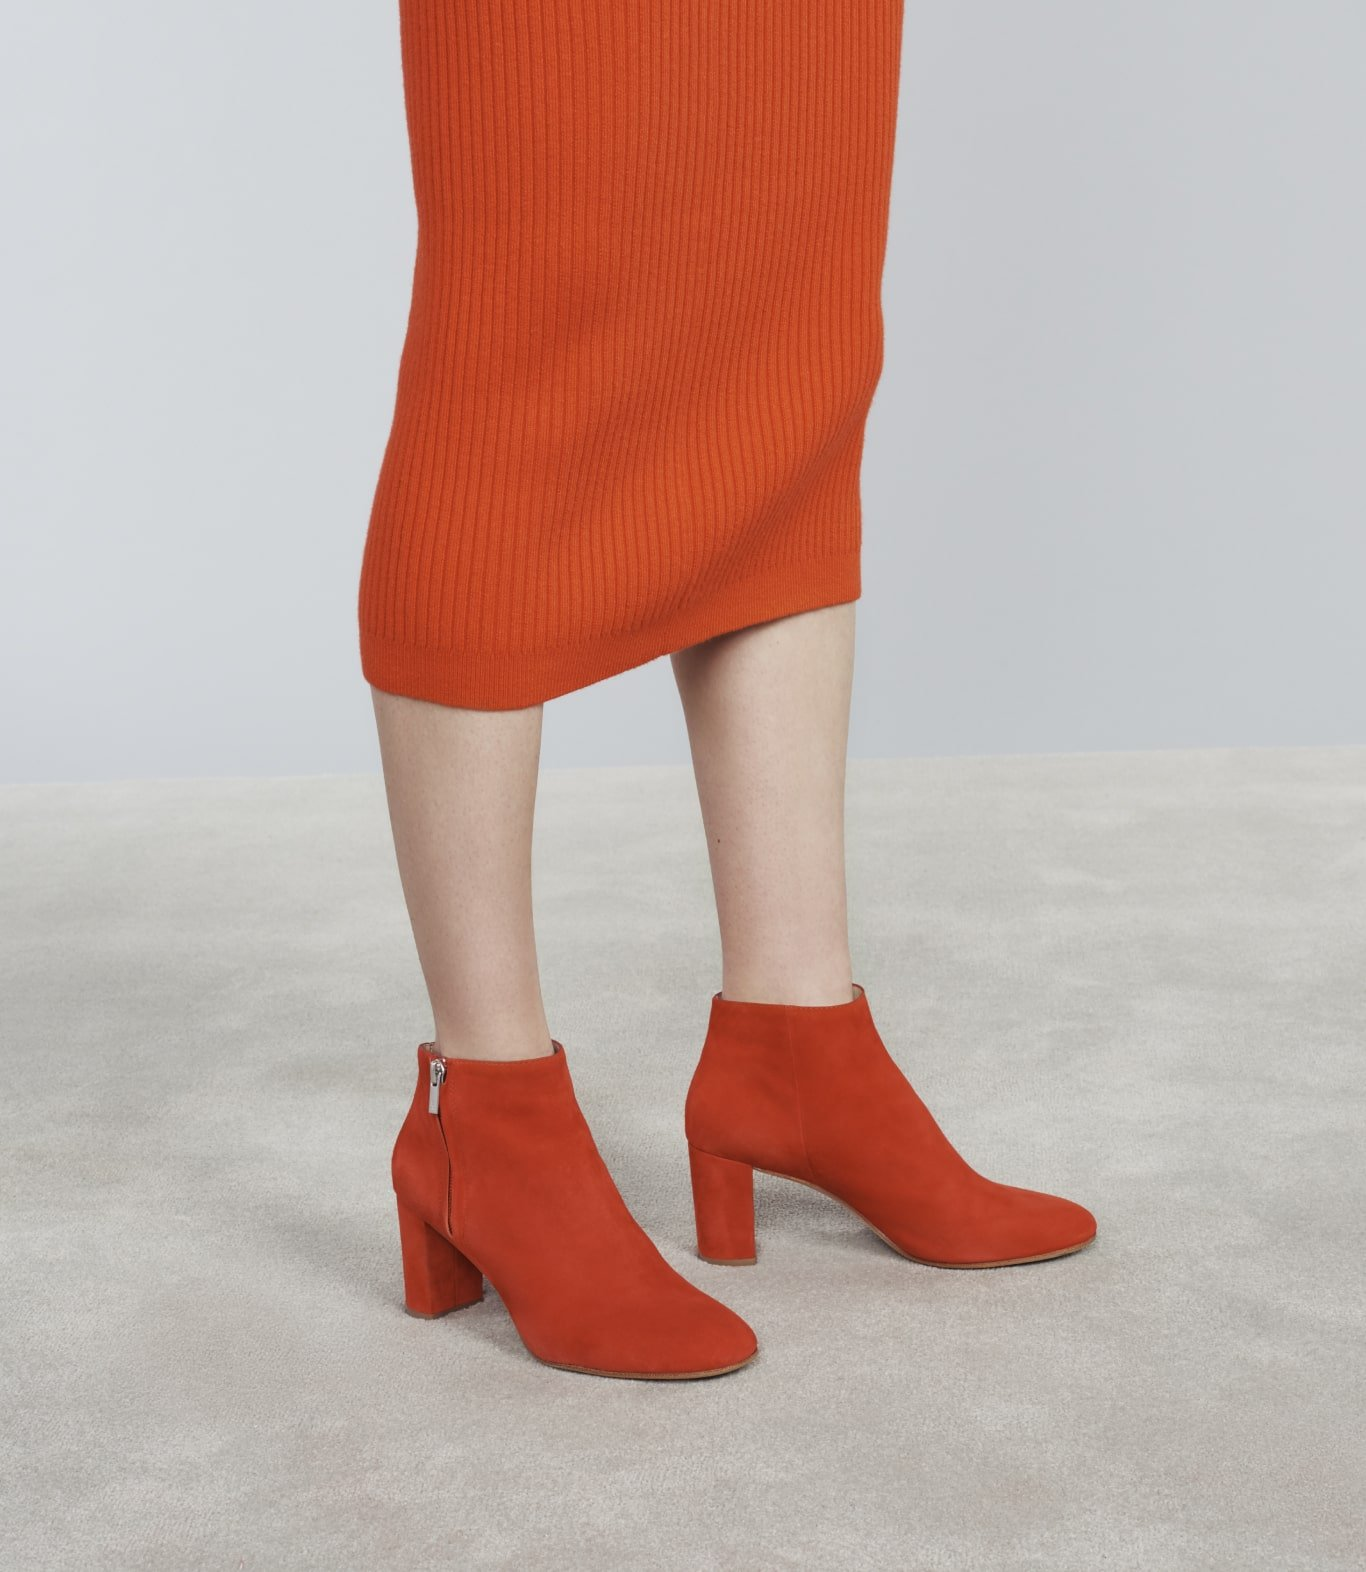 Close up of Loeffler Randall red heeled-suede-boots. Art direction by RoAndCo